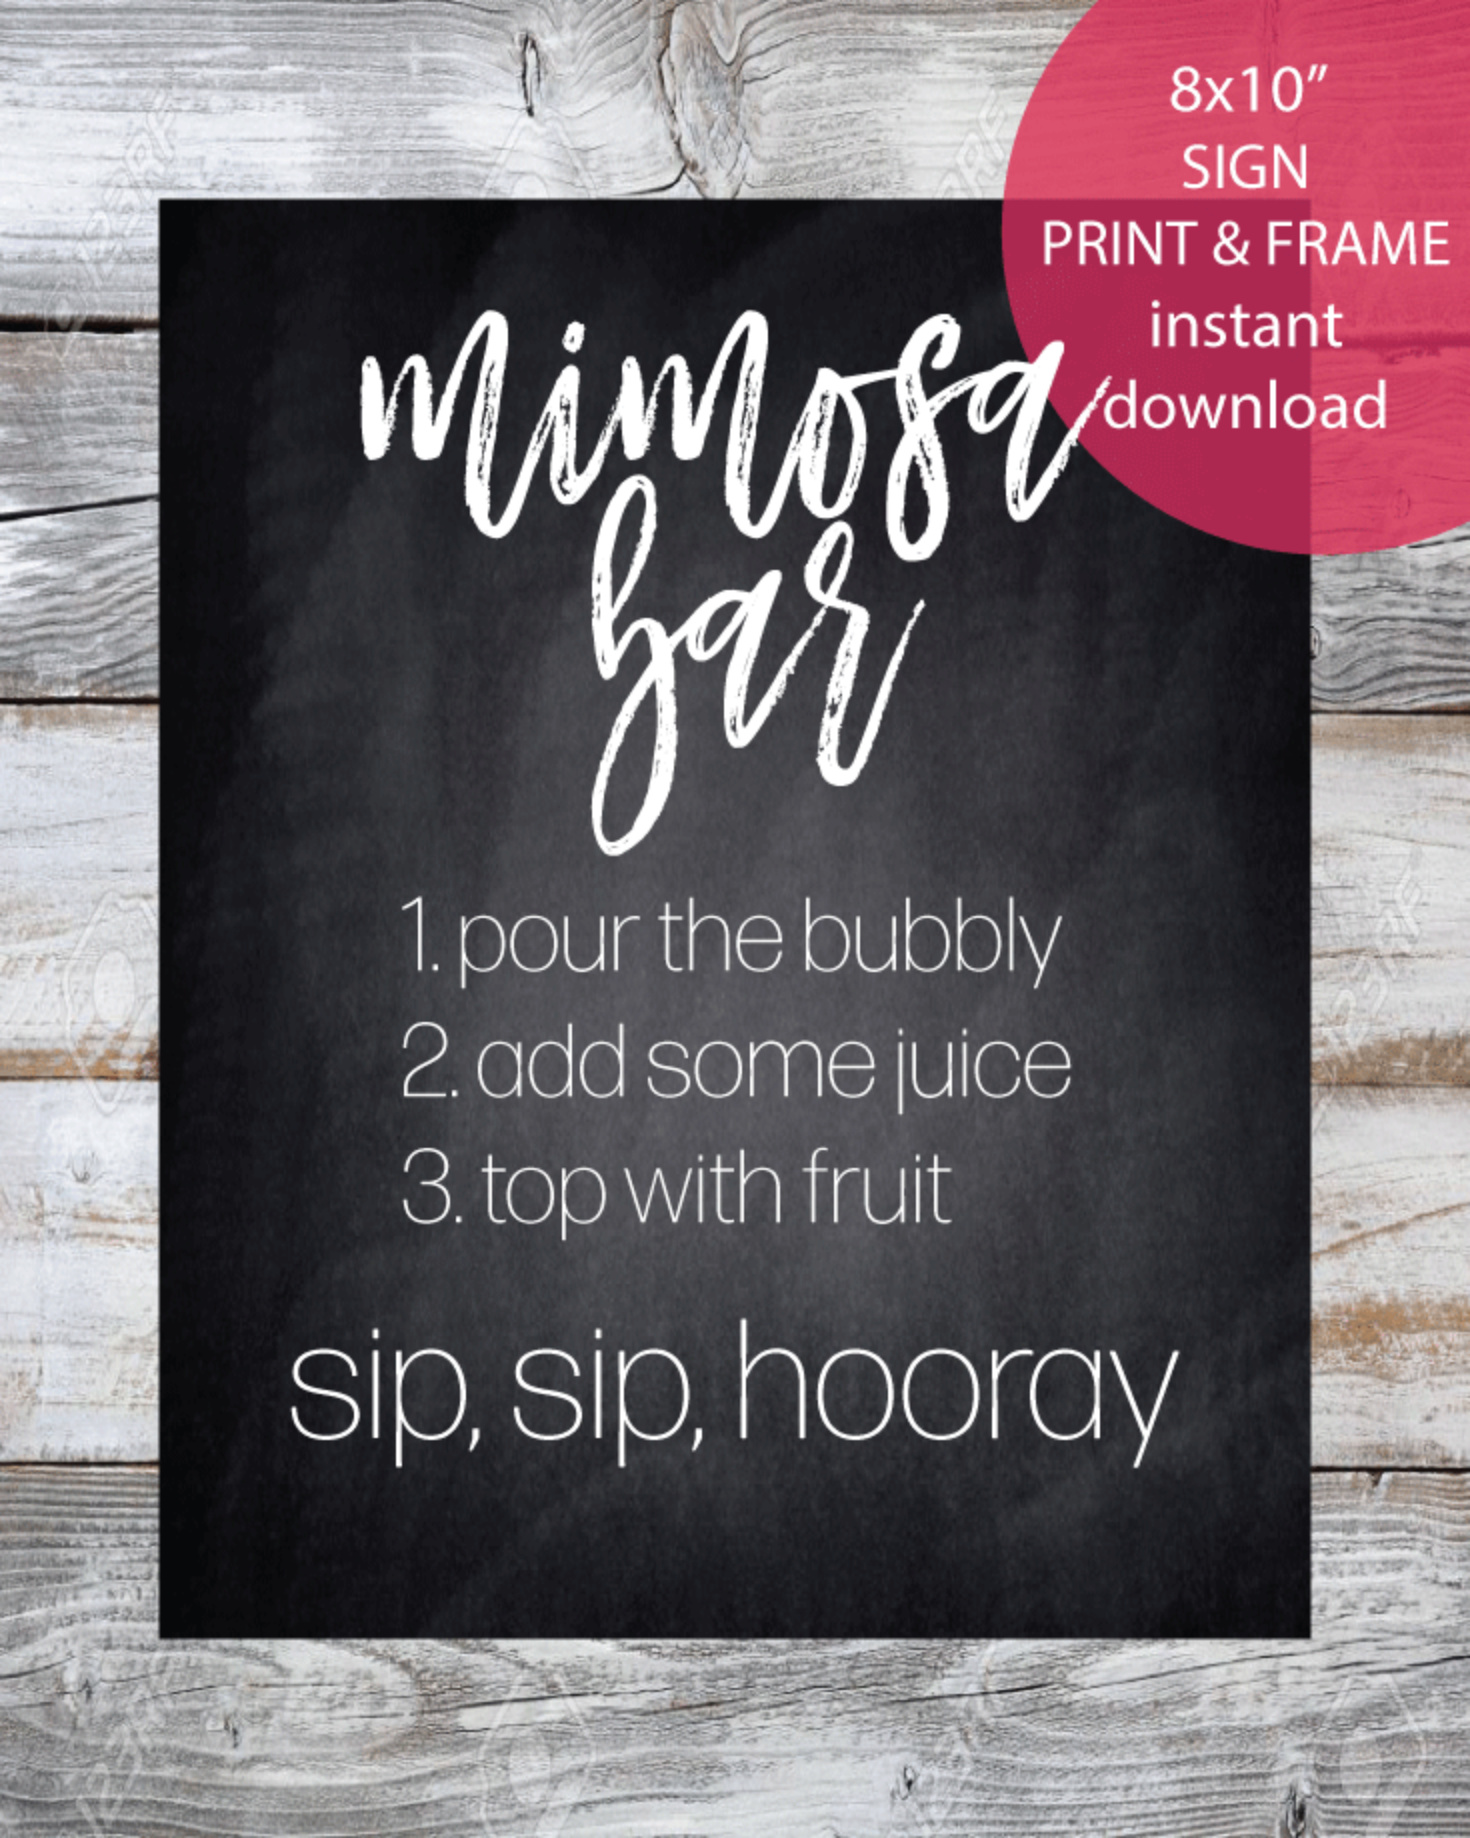 "Printable Mimosa Bar Sign - 8x10"" Chalkboard Style"